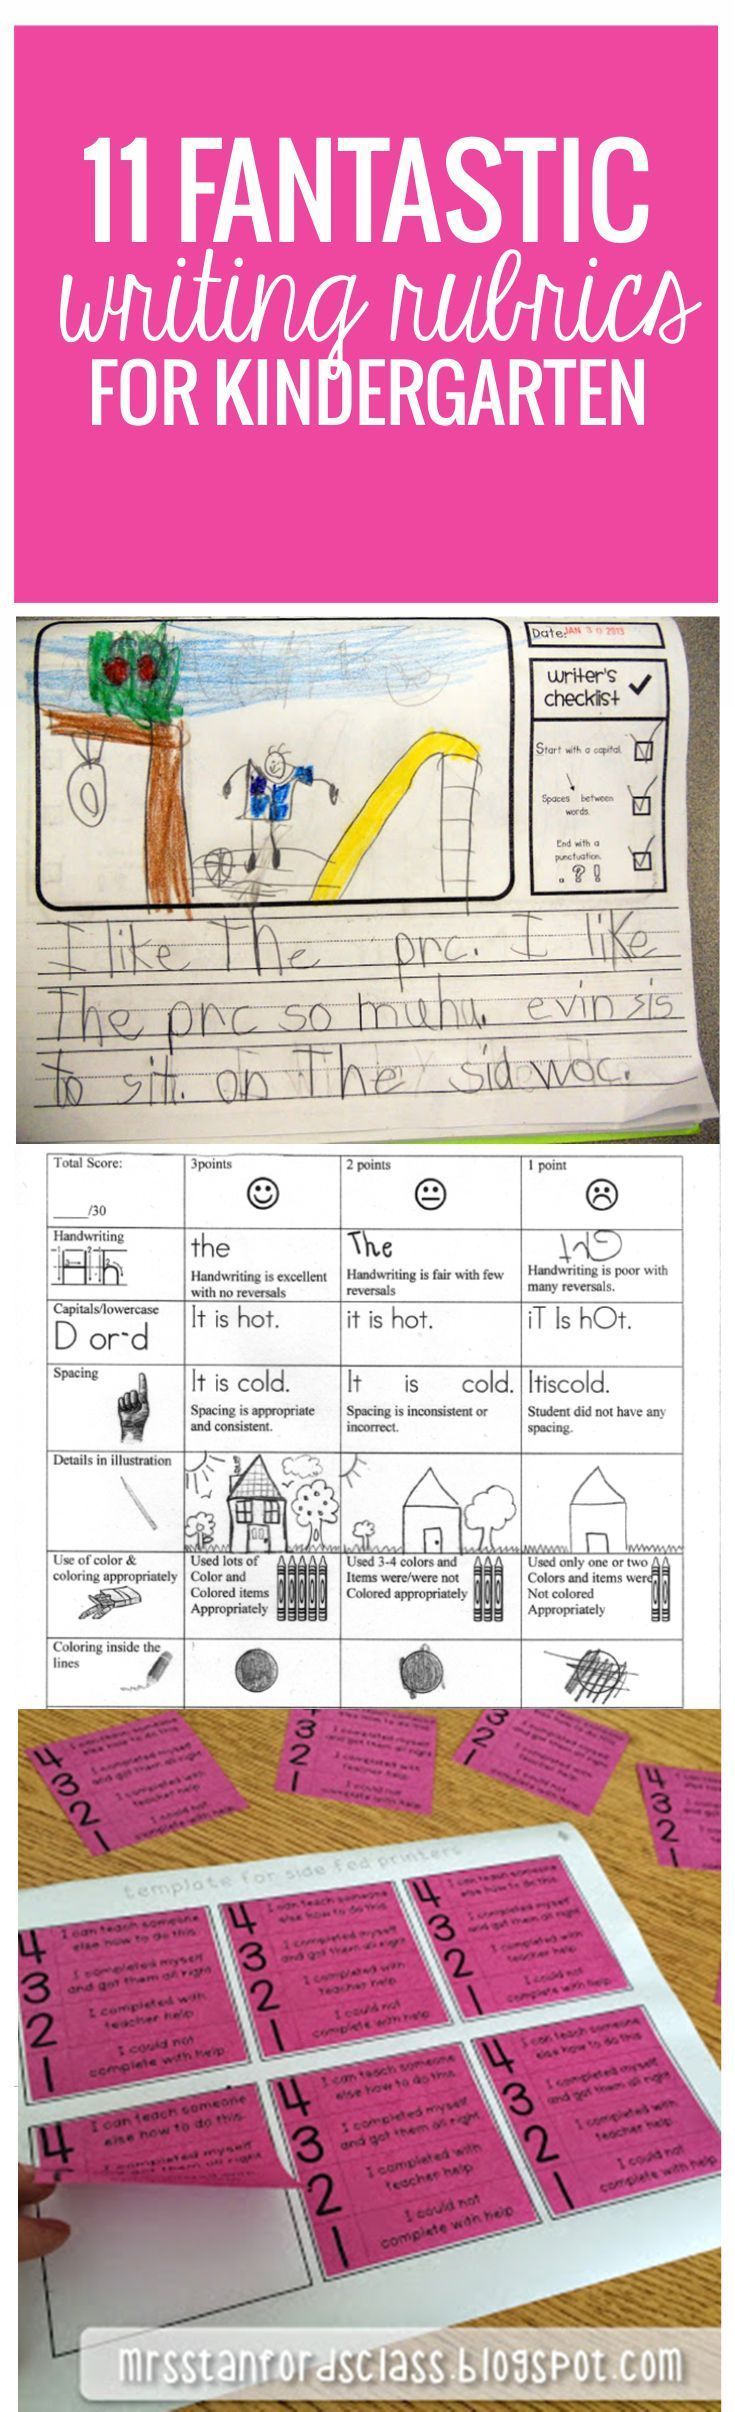 227 Best Kinder Writing/drawing Images | Kindergarten